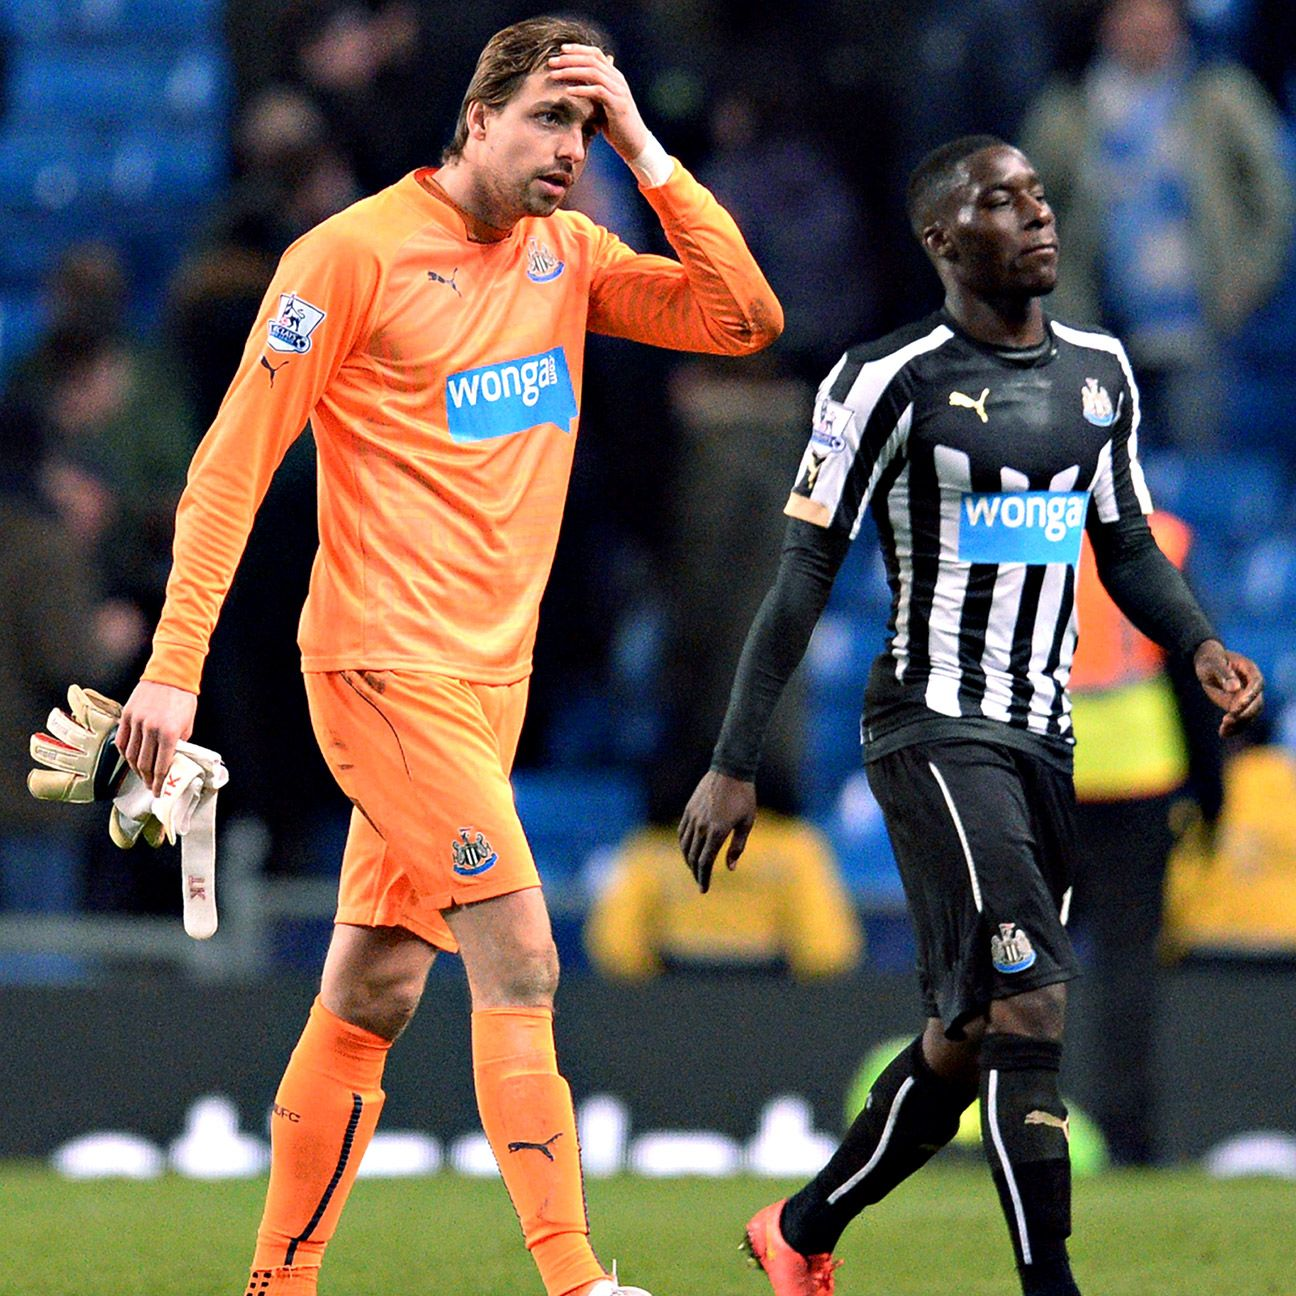 On Saturday, versus Aston Villa, Newcastle goalkeeper Tim Krul will be hoping his day will not be as busy as it was last week at Manchester City.